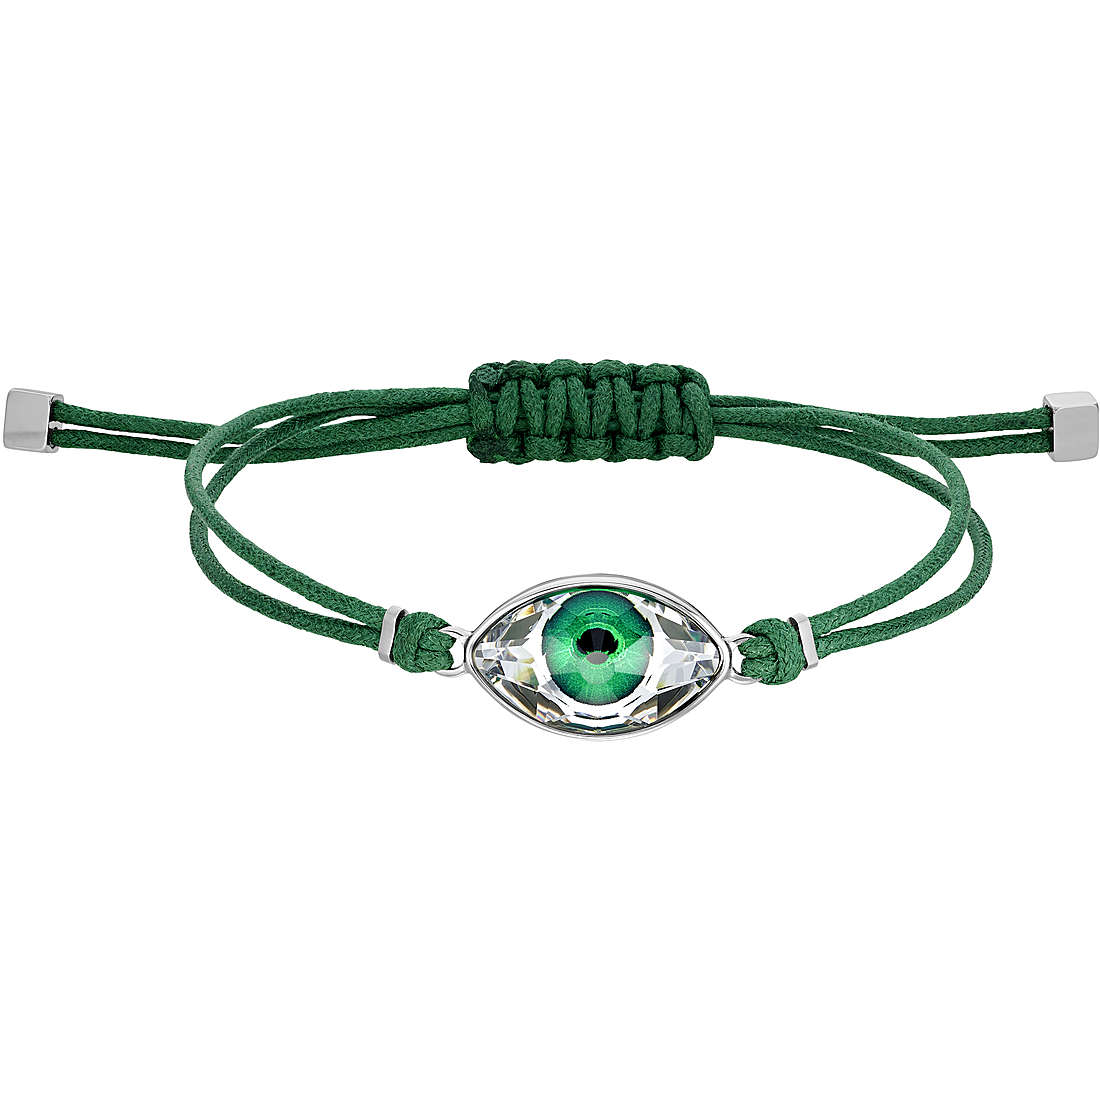 Braccialetto Swarovski Power Collection verde acciaio inossidabile 5508535